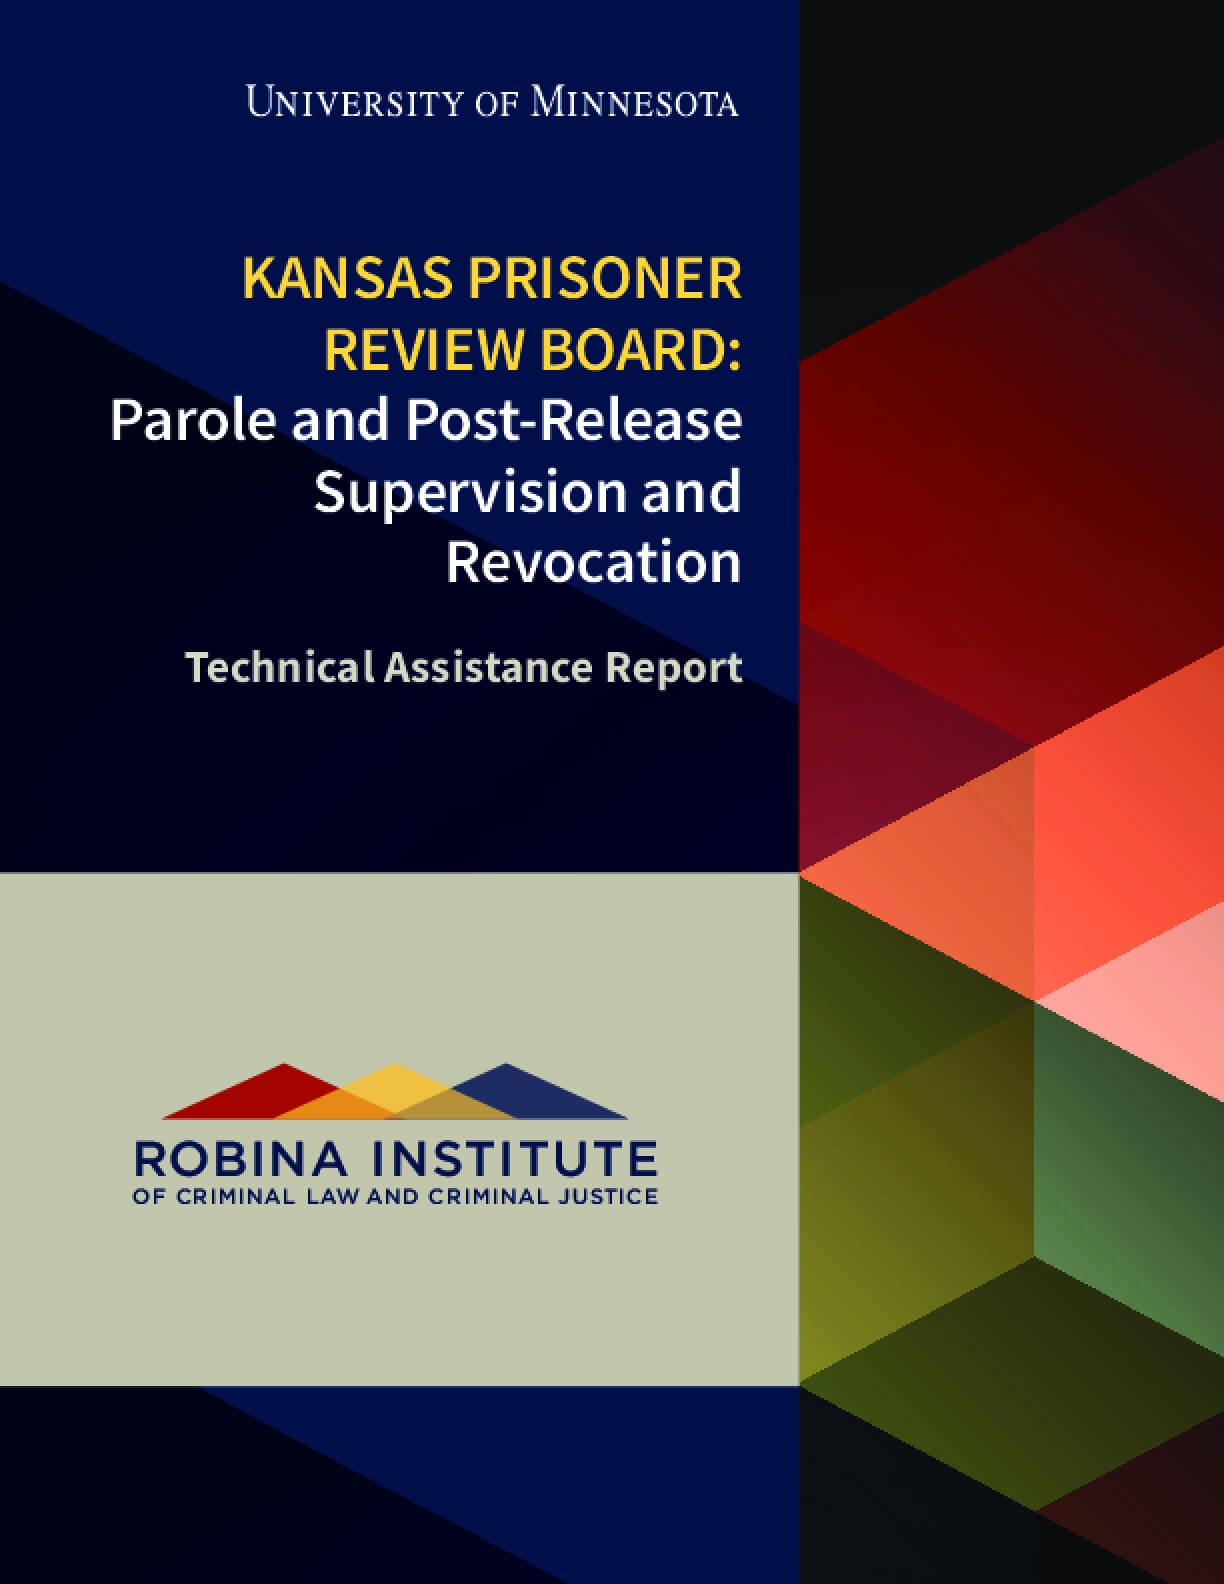 Kansas Prisoner Review Board: Parole and Post-Release Supervision and Revocation Technical Assistance Report